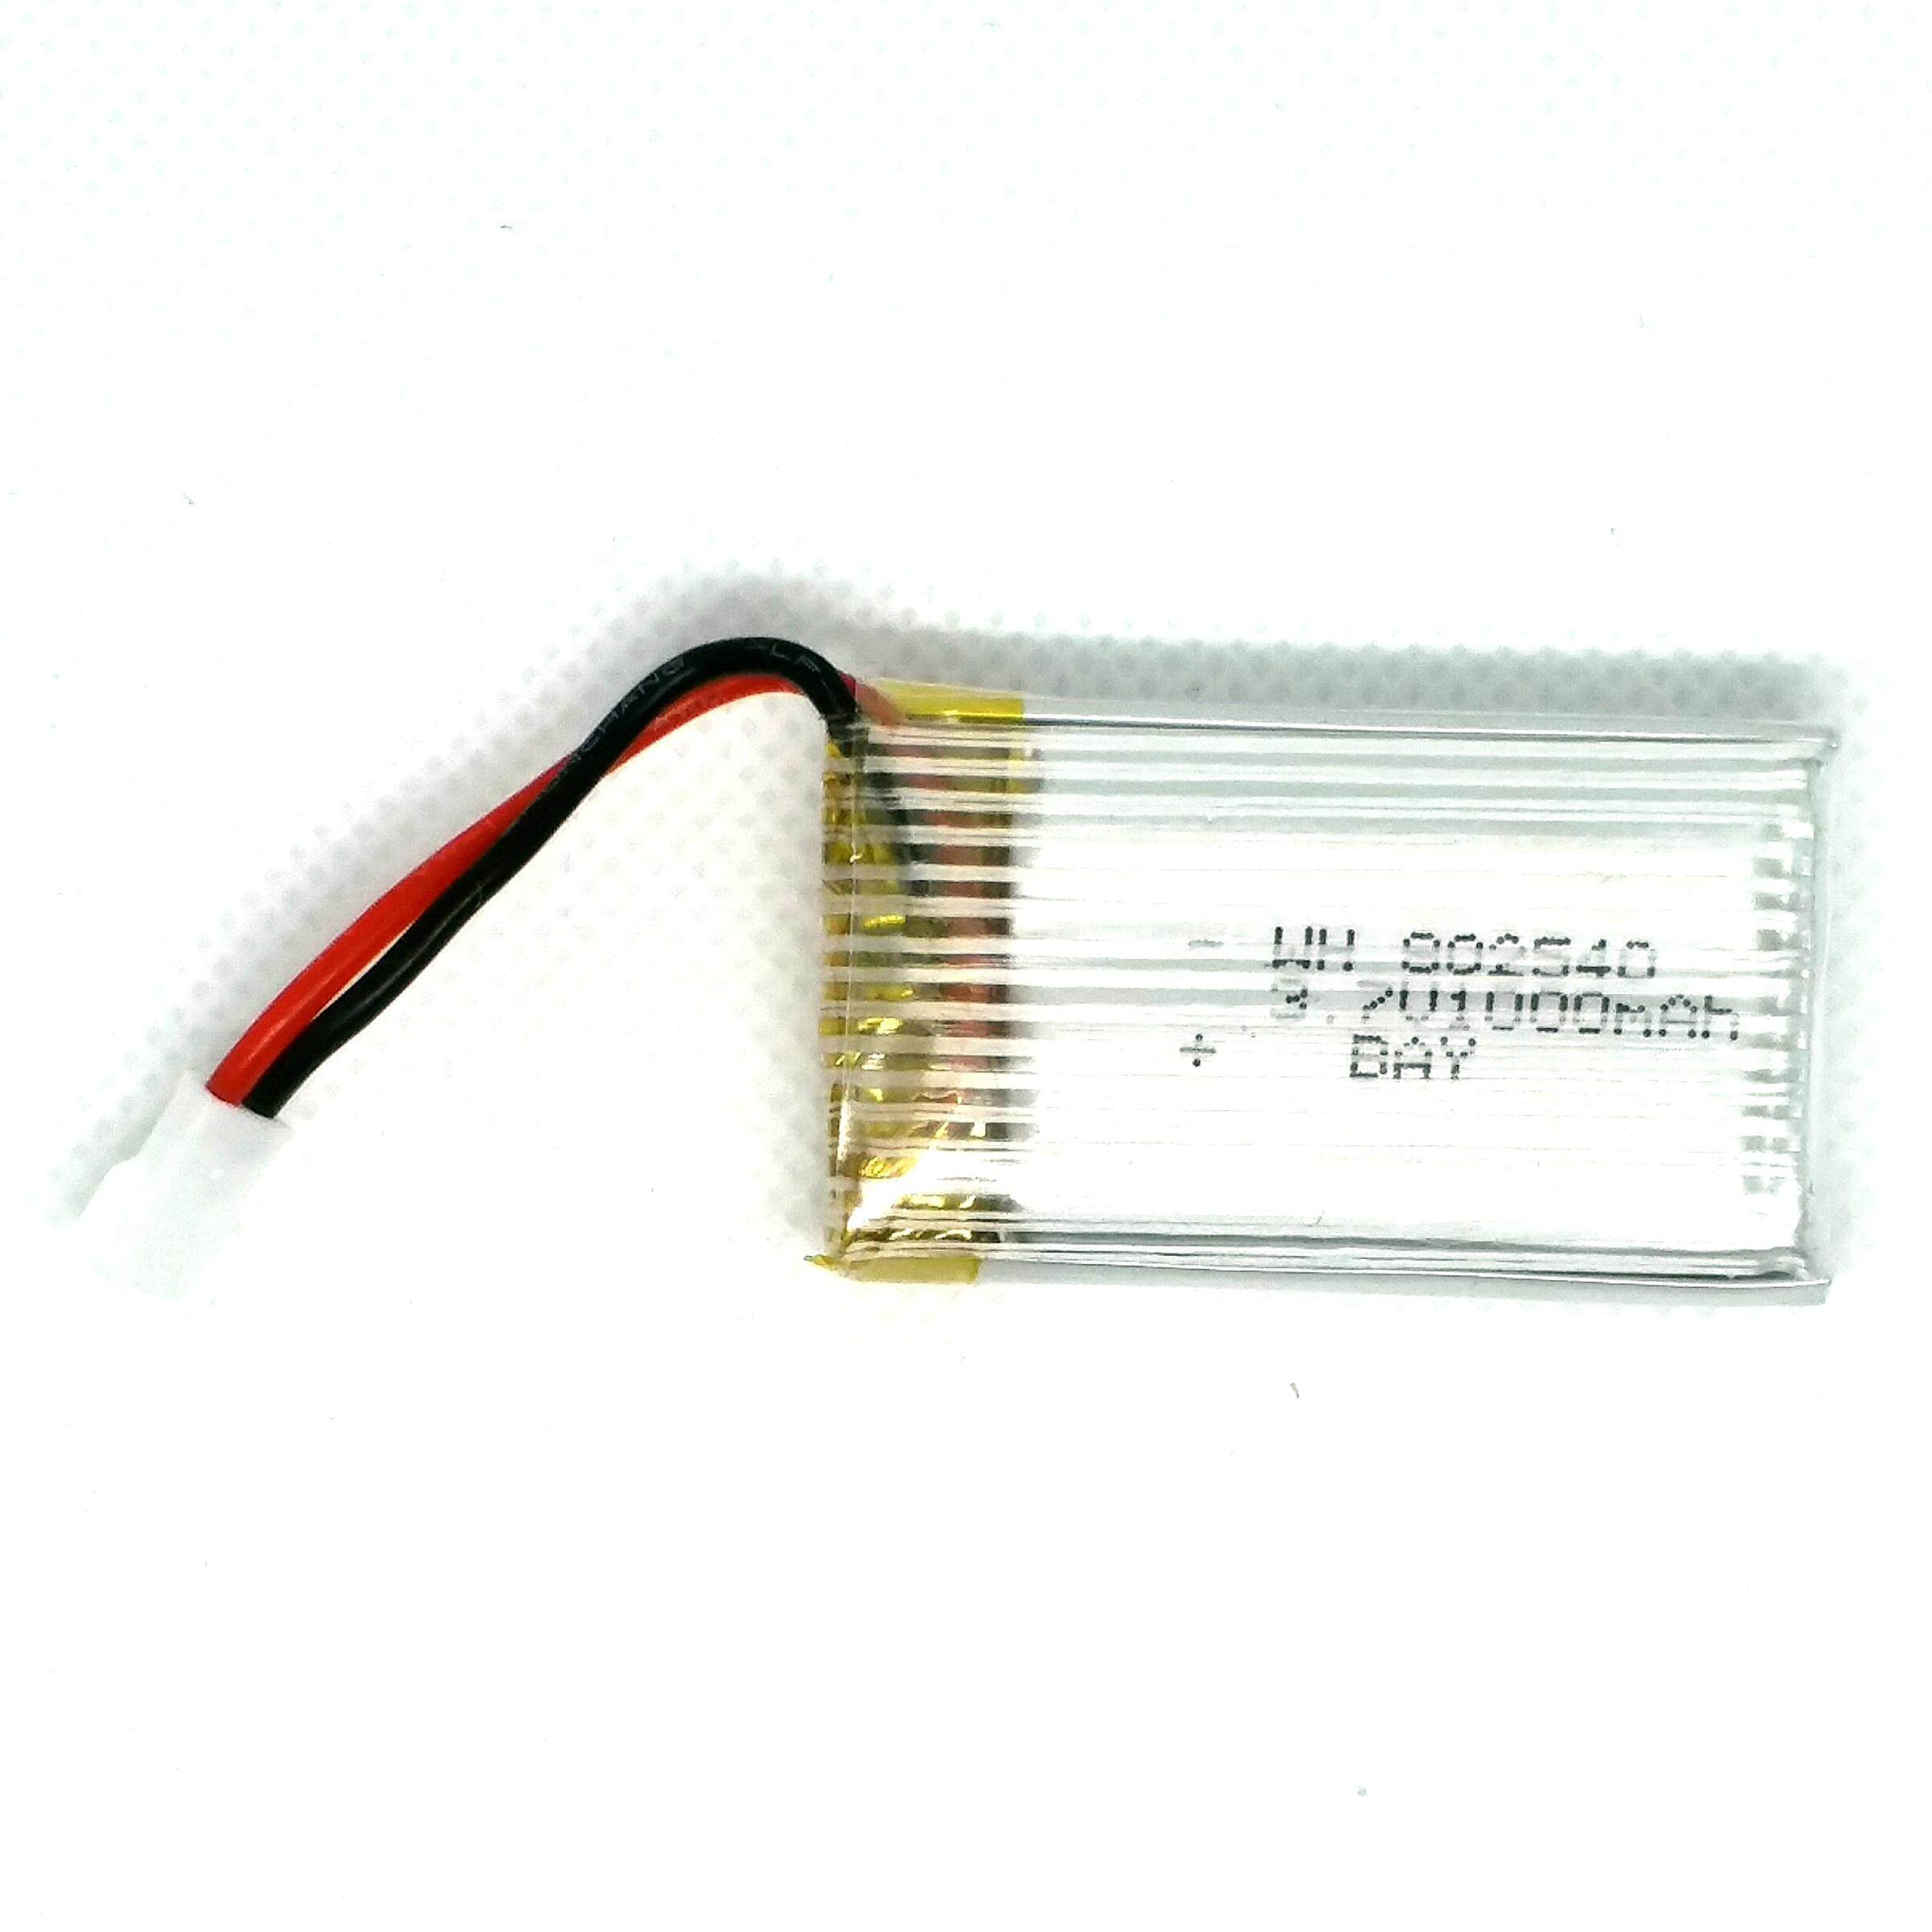 R/c Drones Accessories Li-Poly Battery 3.7v 1000mah + Ort By Toys Shop.